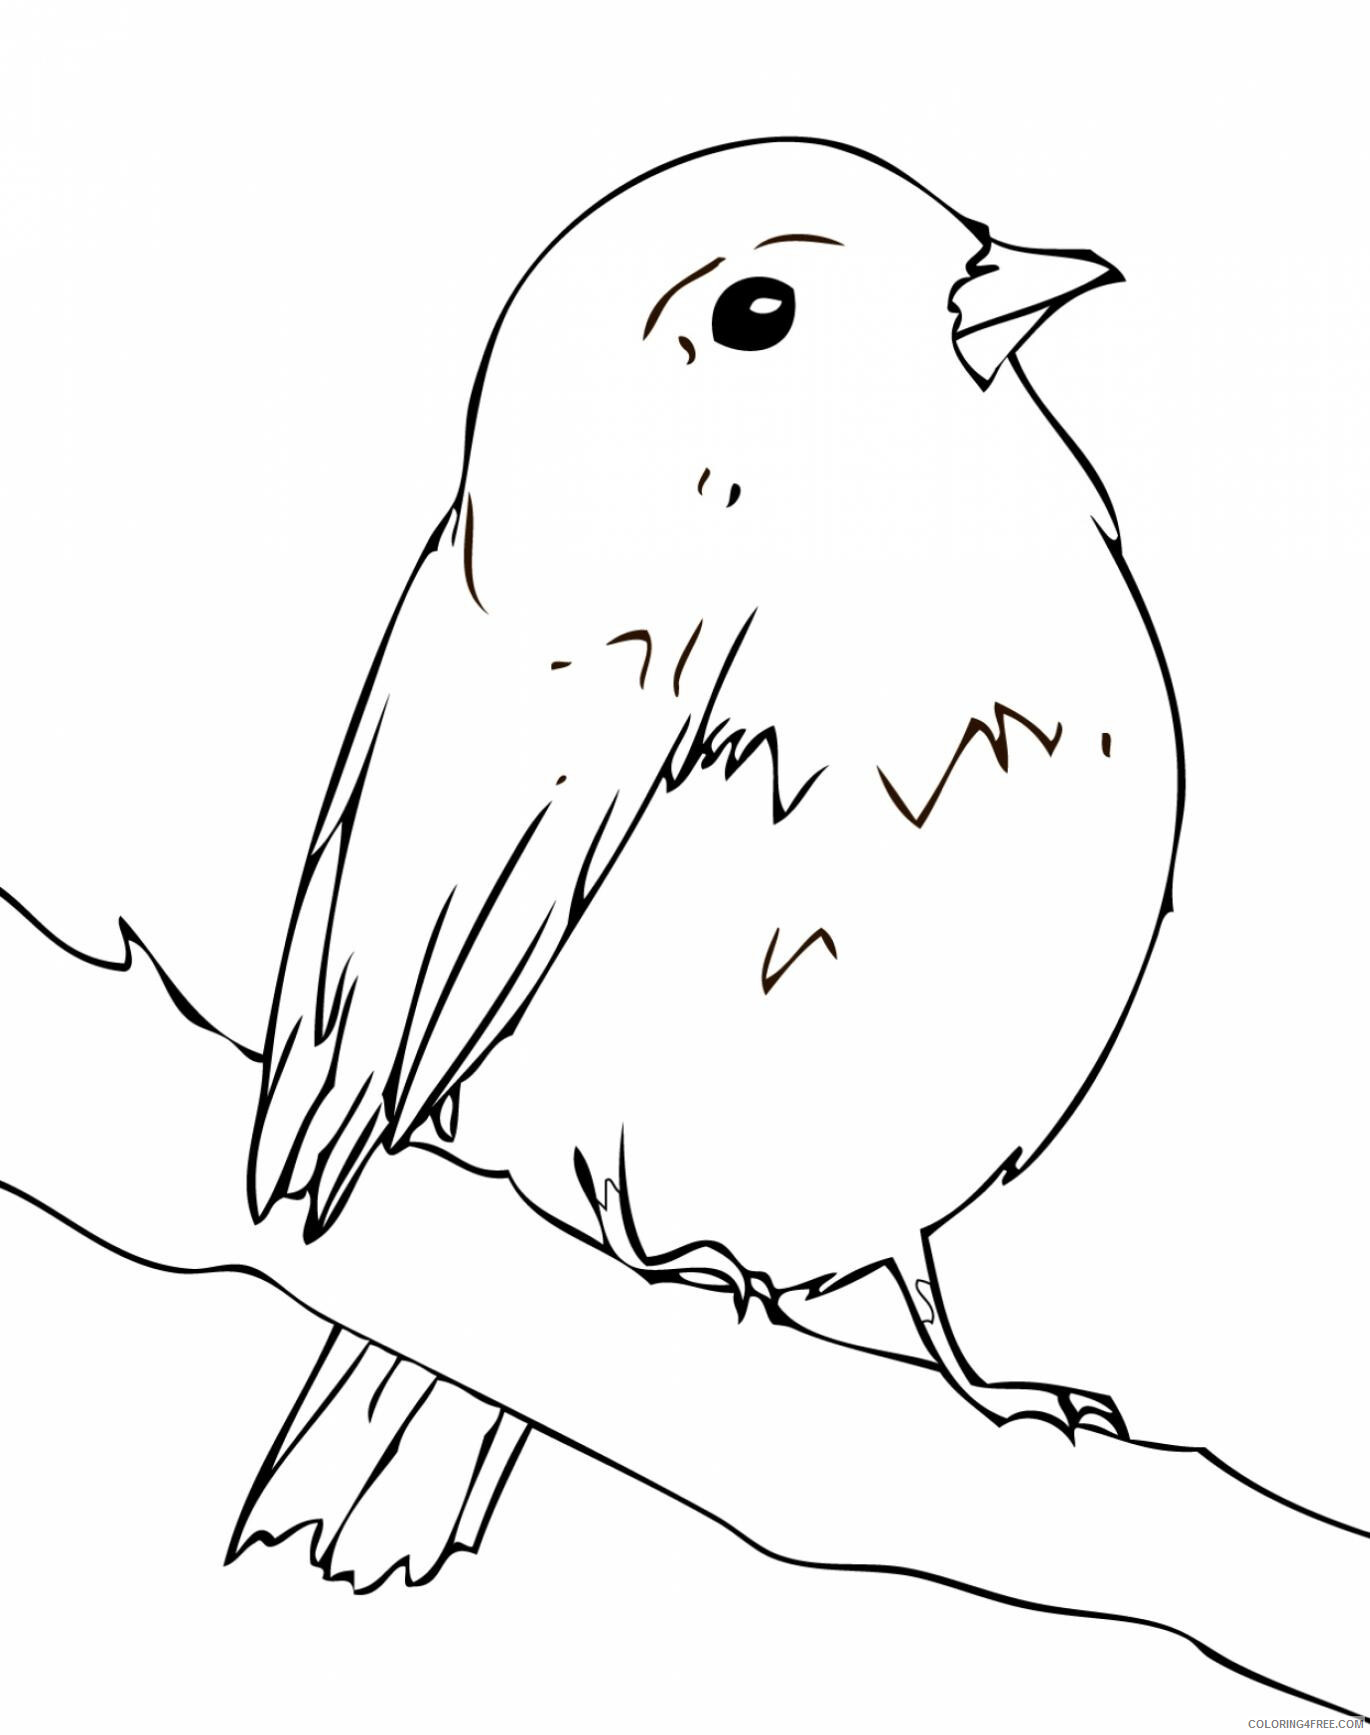 Simple Coloring Pages for Kids Simple Robin Bird Printable 2021 600 Coloring4free